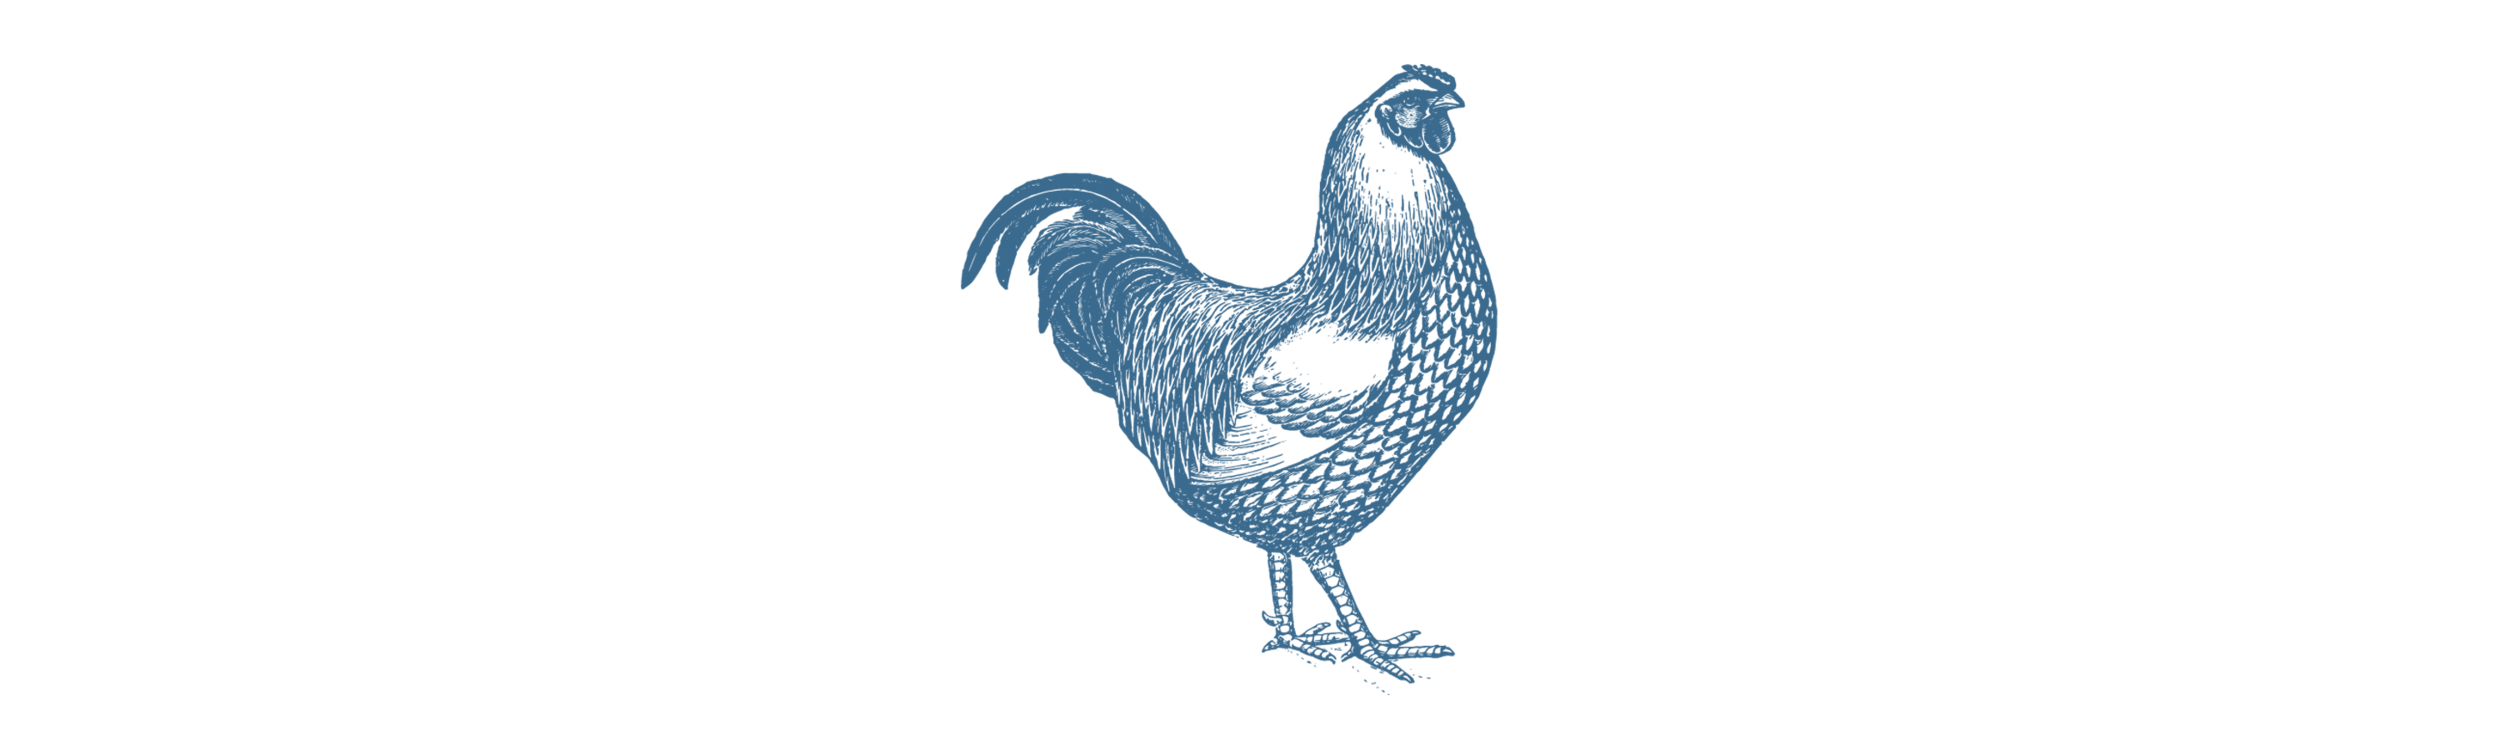 Chicken_Transparent copy+wide.png